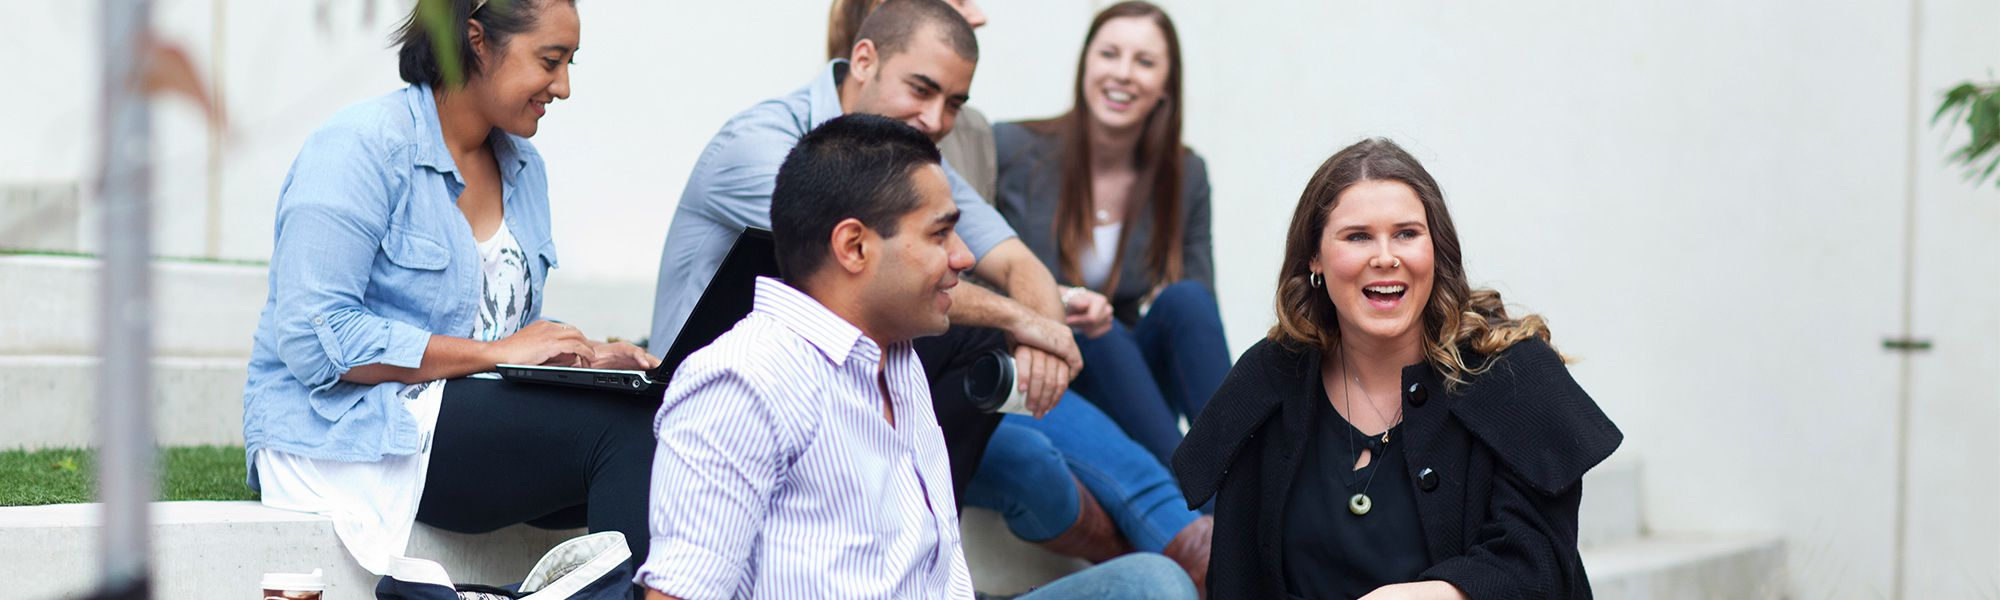 A group of six students are sitting outside having a conversation. Two students are in focus with four in the background.